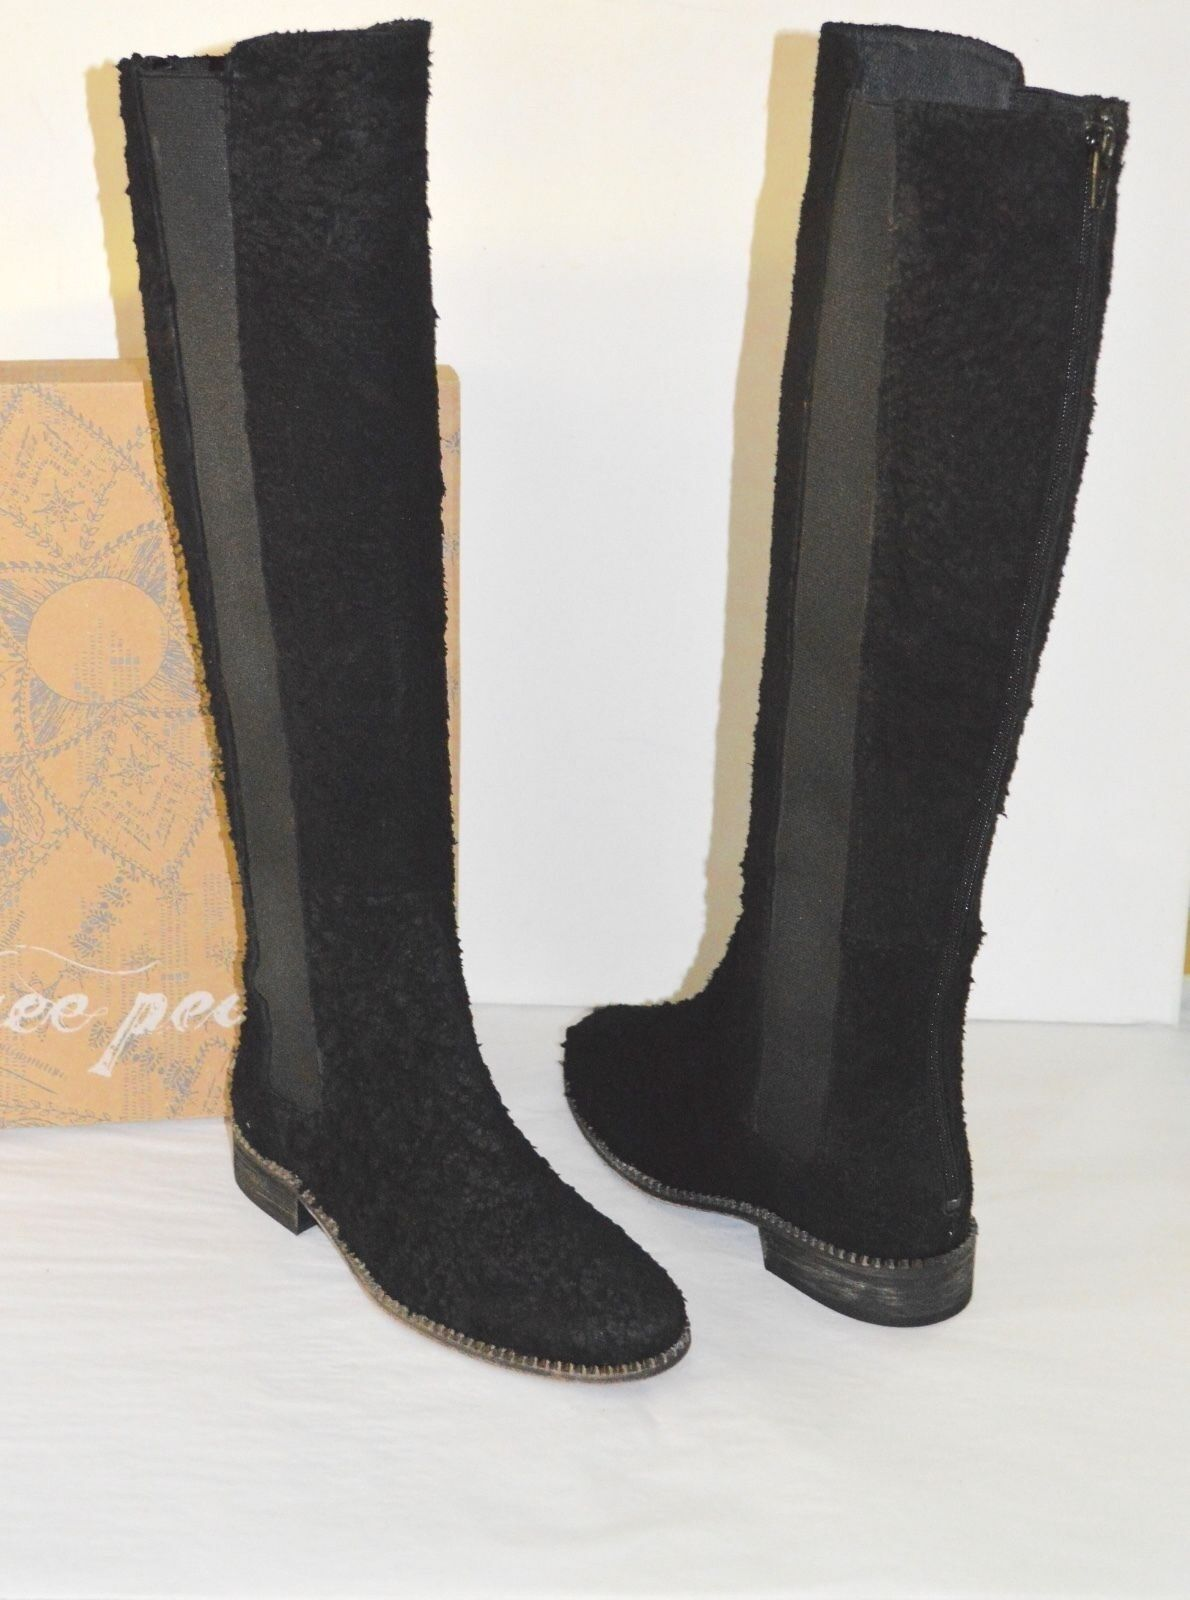 New $298 Free People Callow Tall/Knee High Boots Pull On Distressed Suede Black